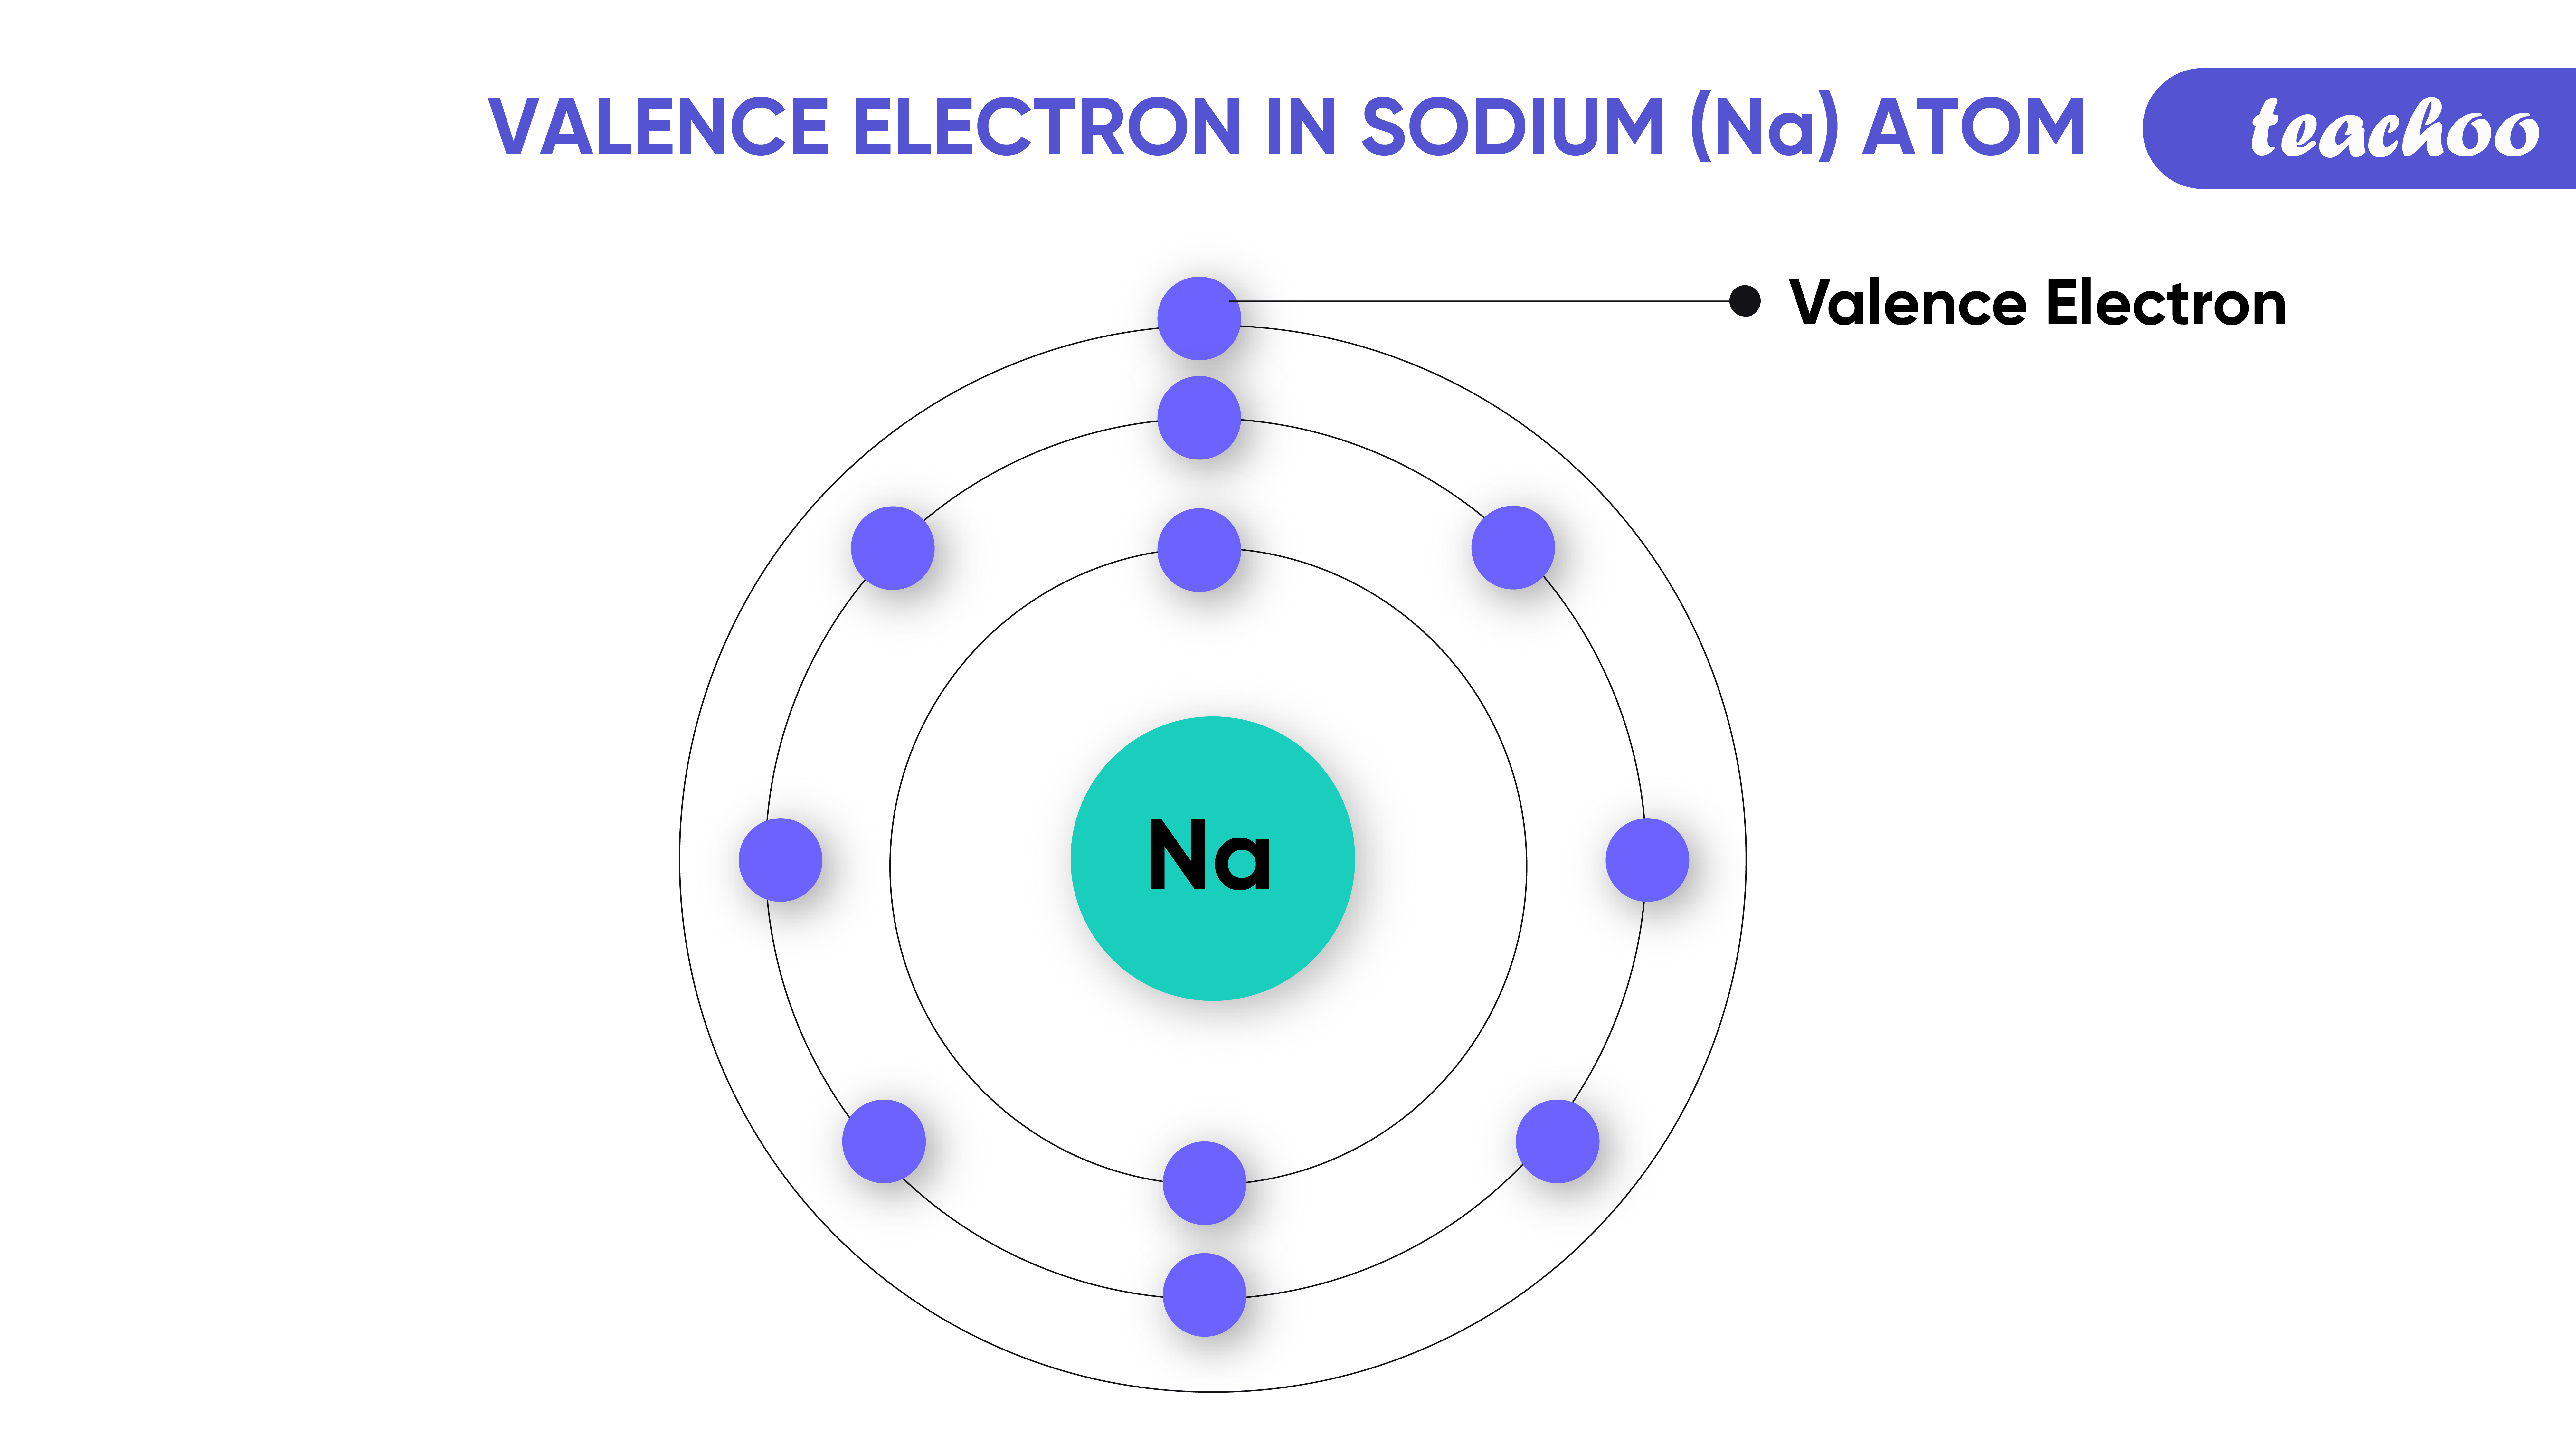 21. and 24. valence electrons sodium-Teachoo-01.png